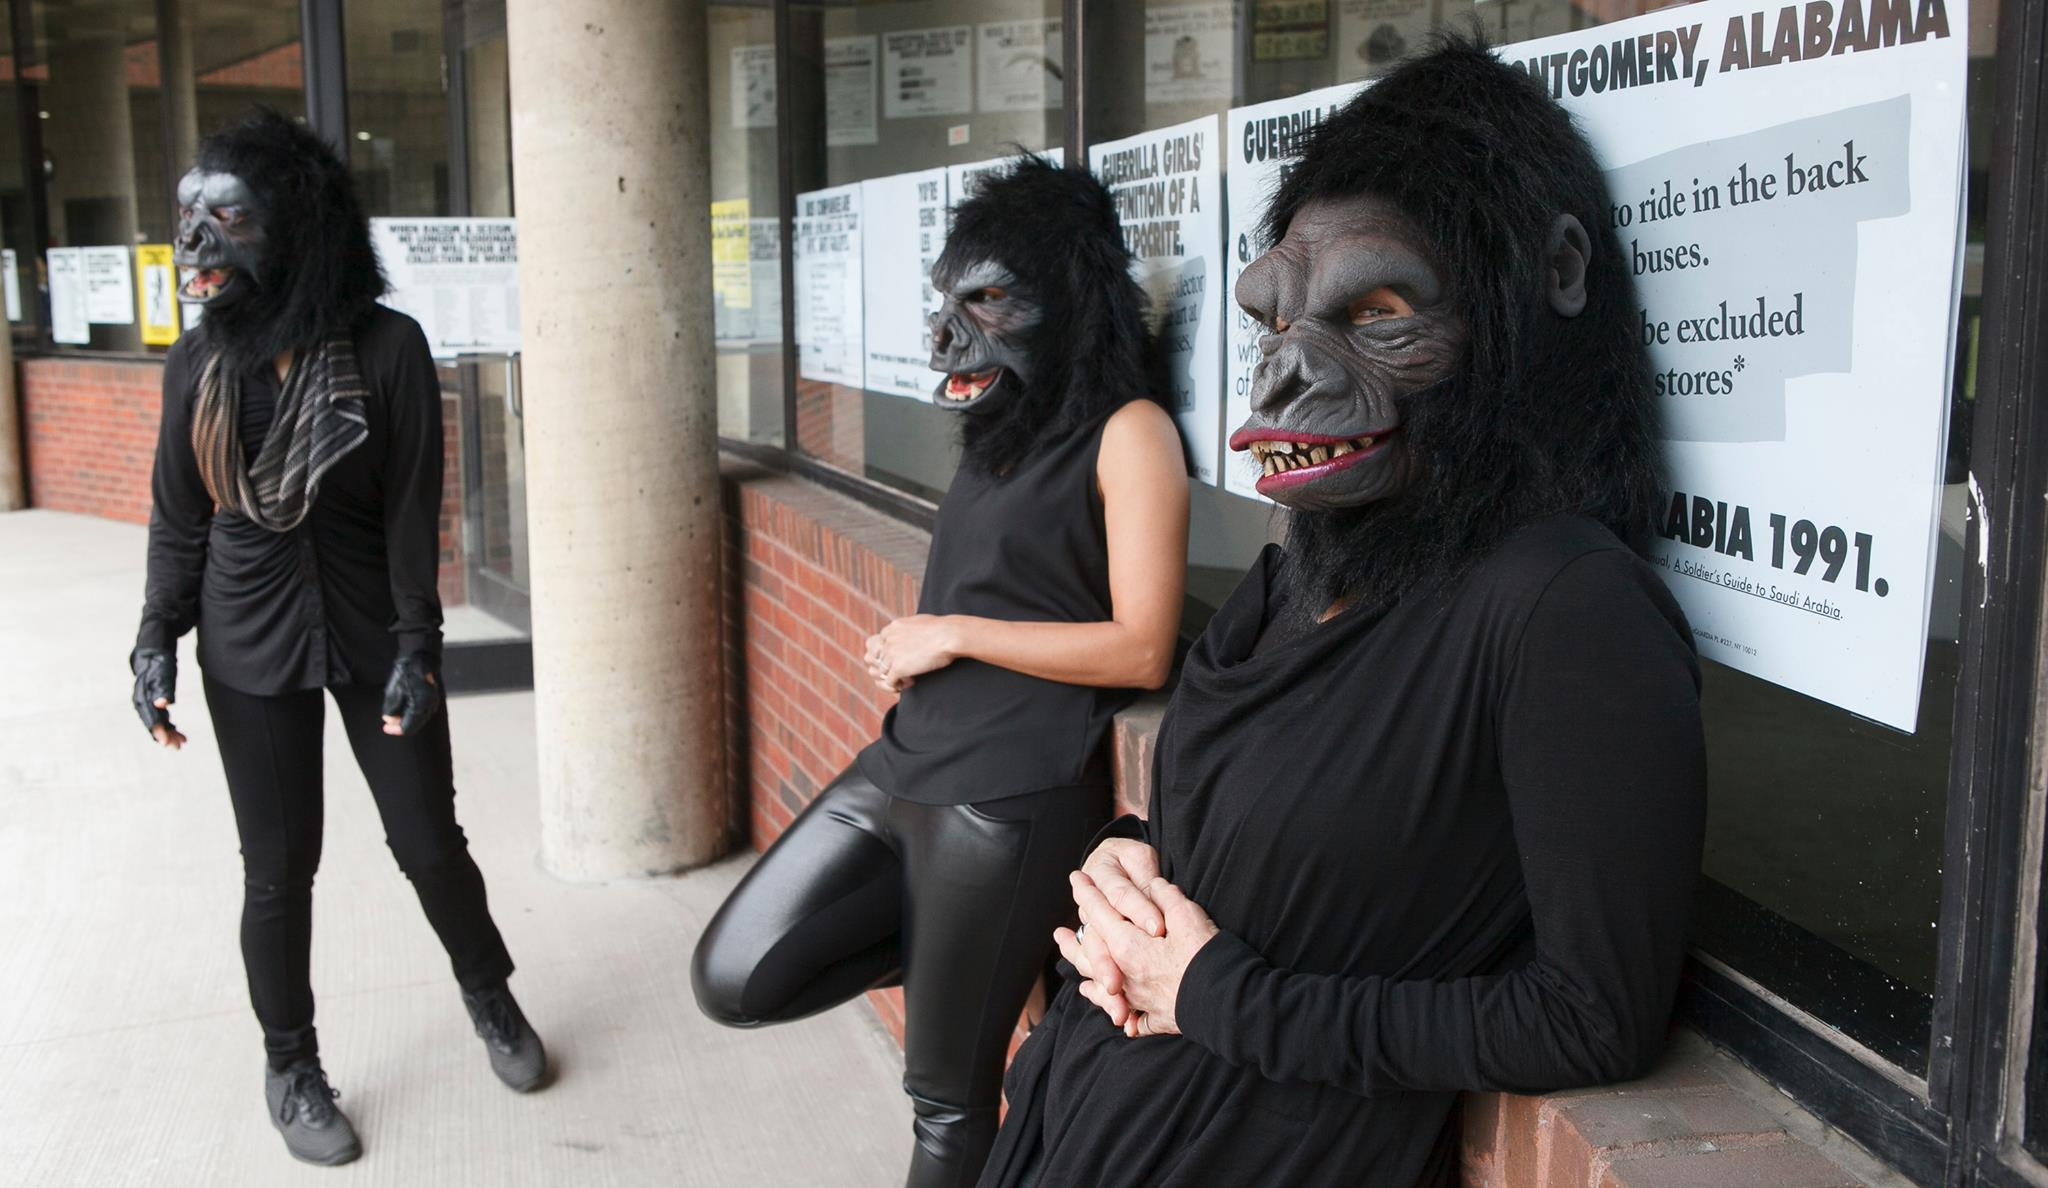 Image by The Guerrilla Girls Facebook